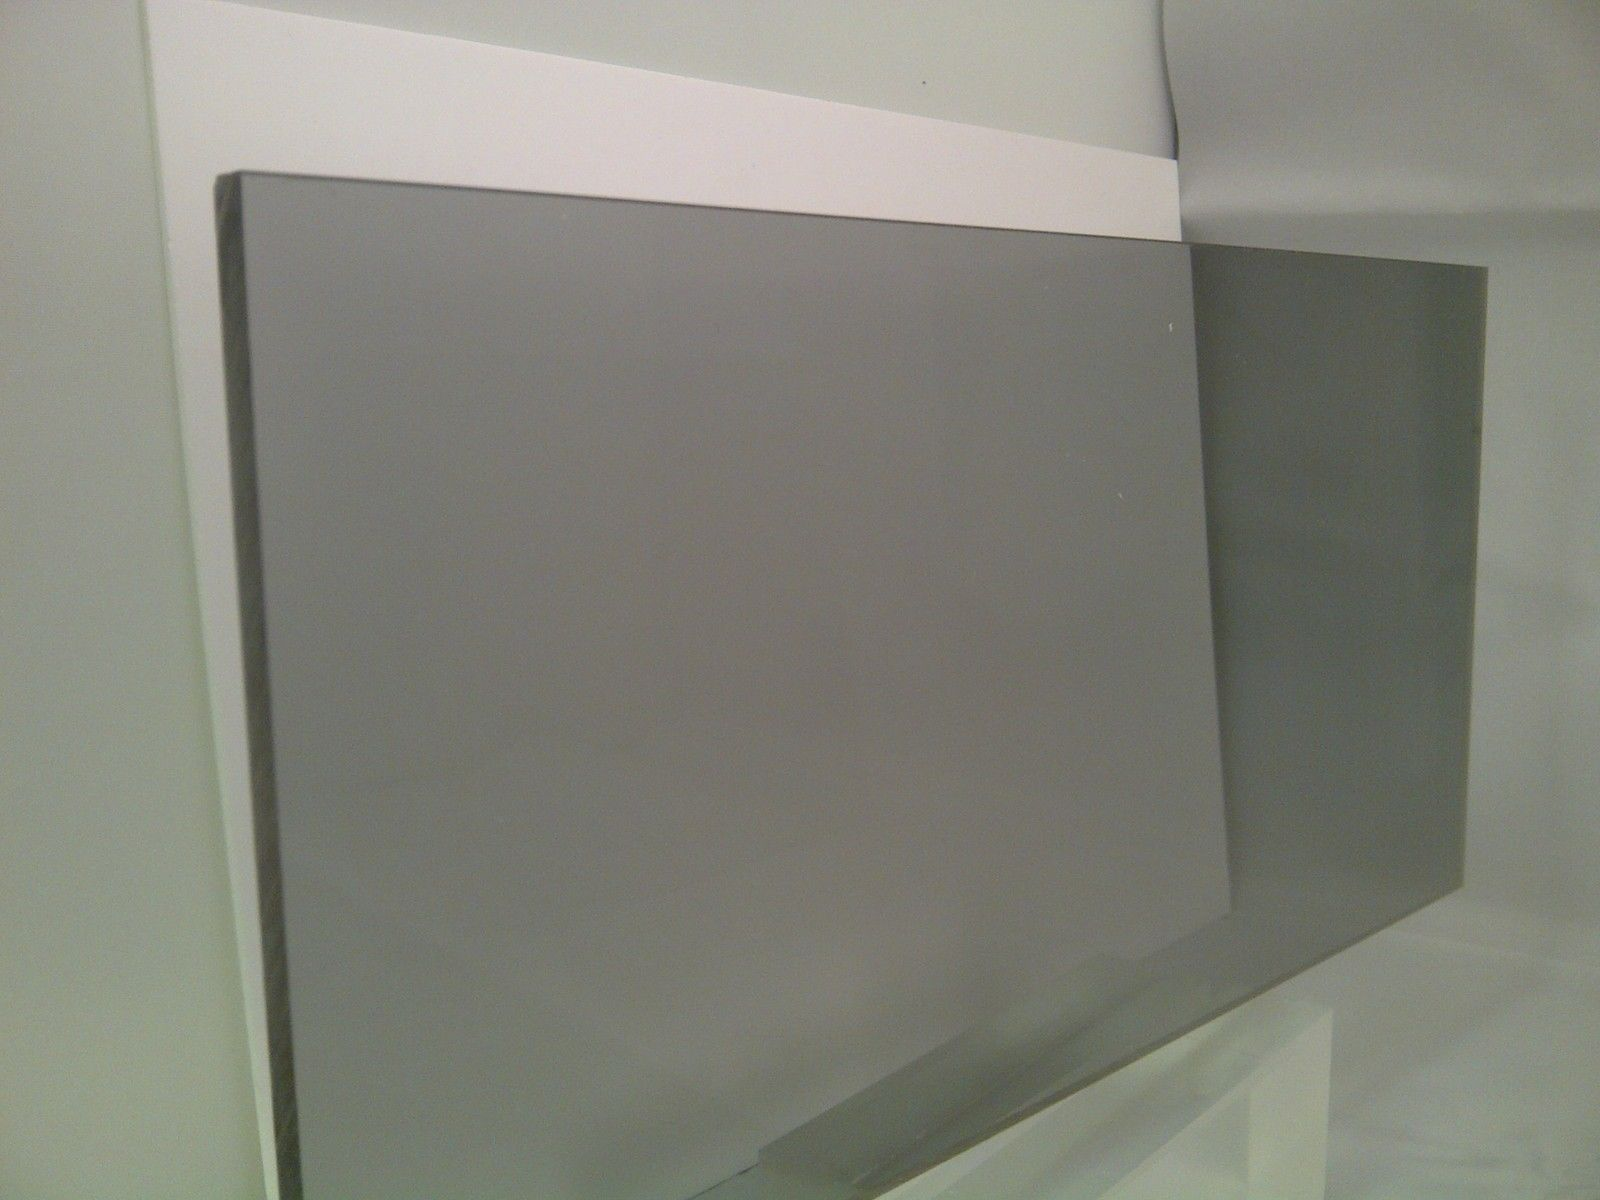 9t21 Neutral Grey Tinted Cast Acrylic By Perspex Sheet Of Boat Window Plastic Perspex Sheet Cast Acrylic Sheet Acrylic Sheets